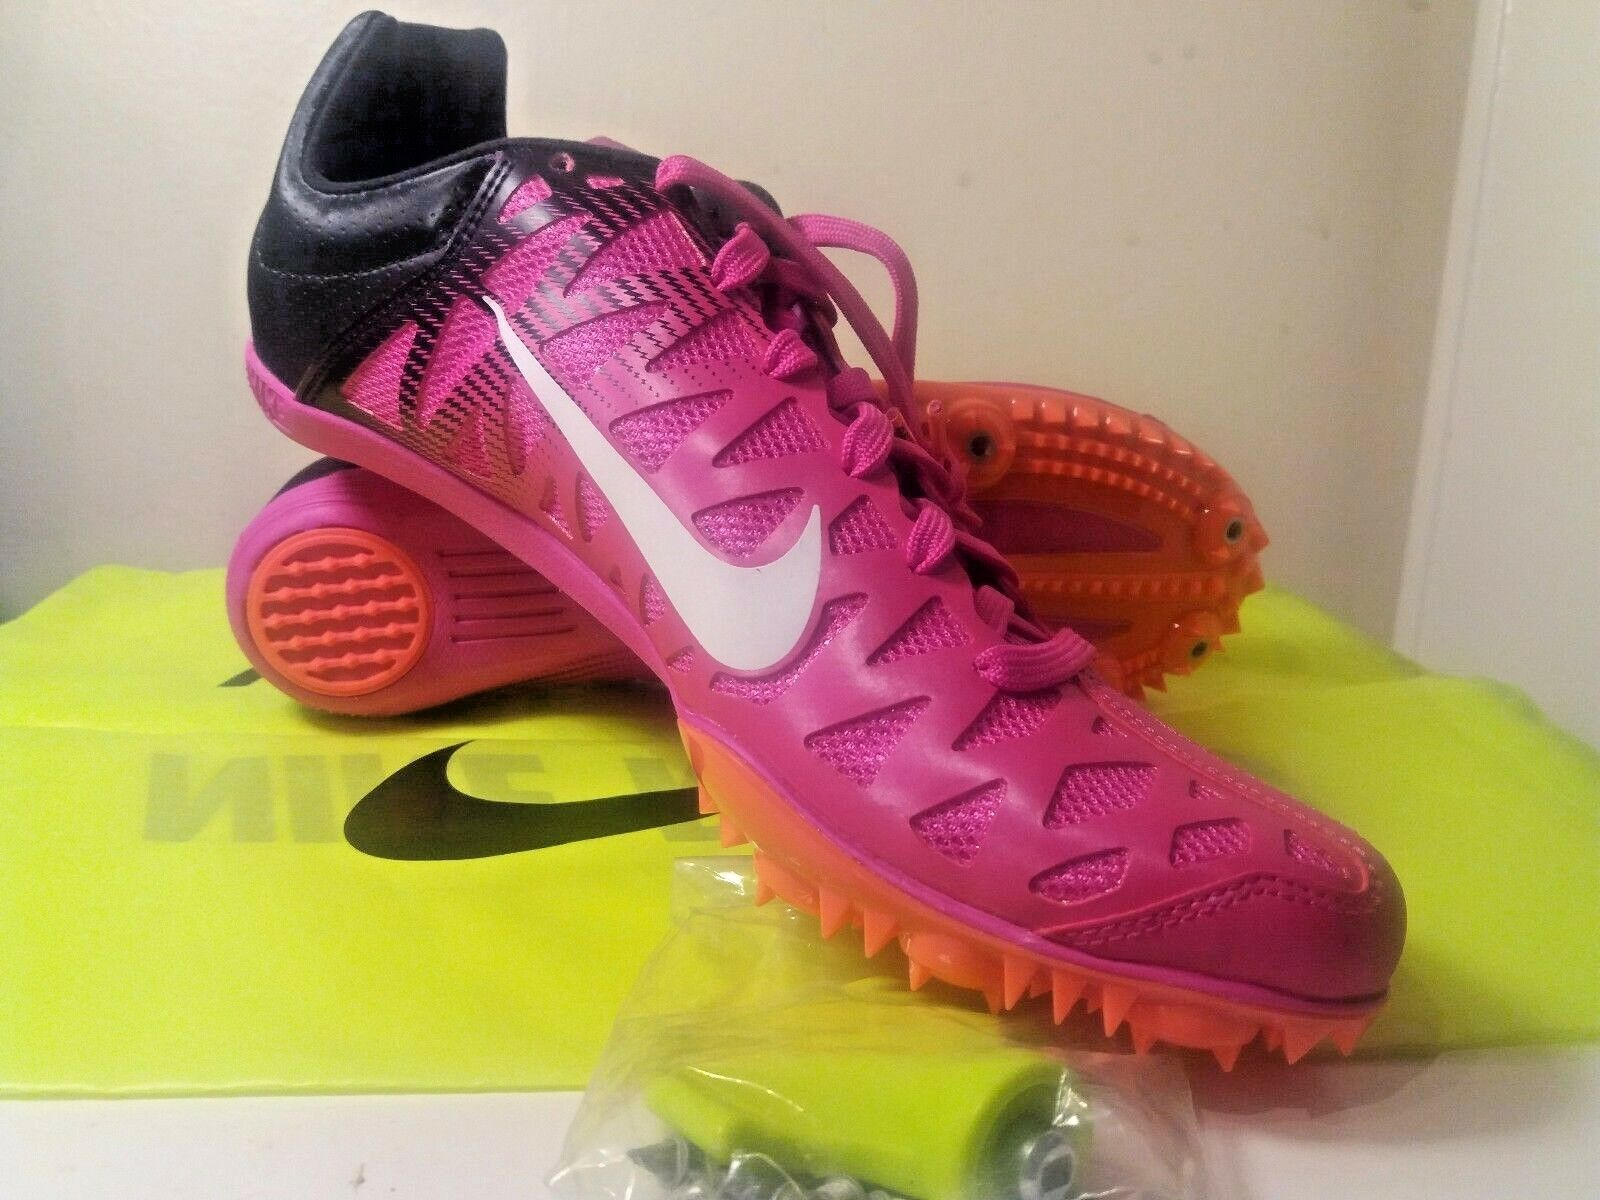 Nike Zoom Maxcat 4 Spikes Running Shoes Mens Size 9 Fire Pink  549150-601